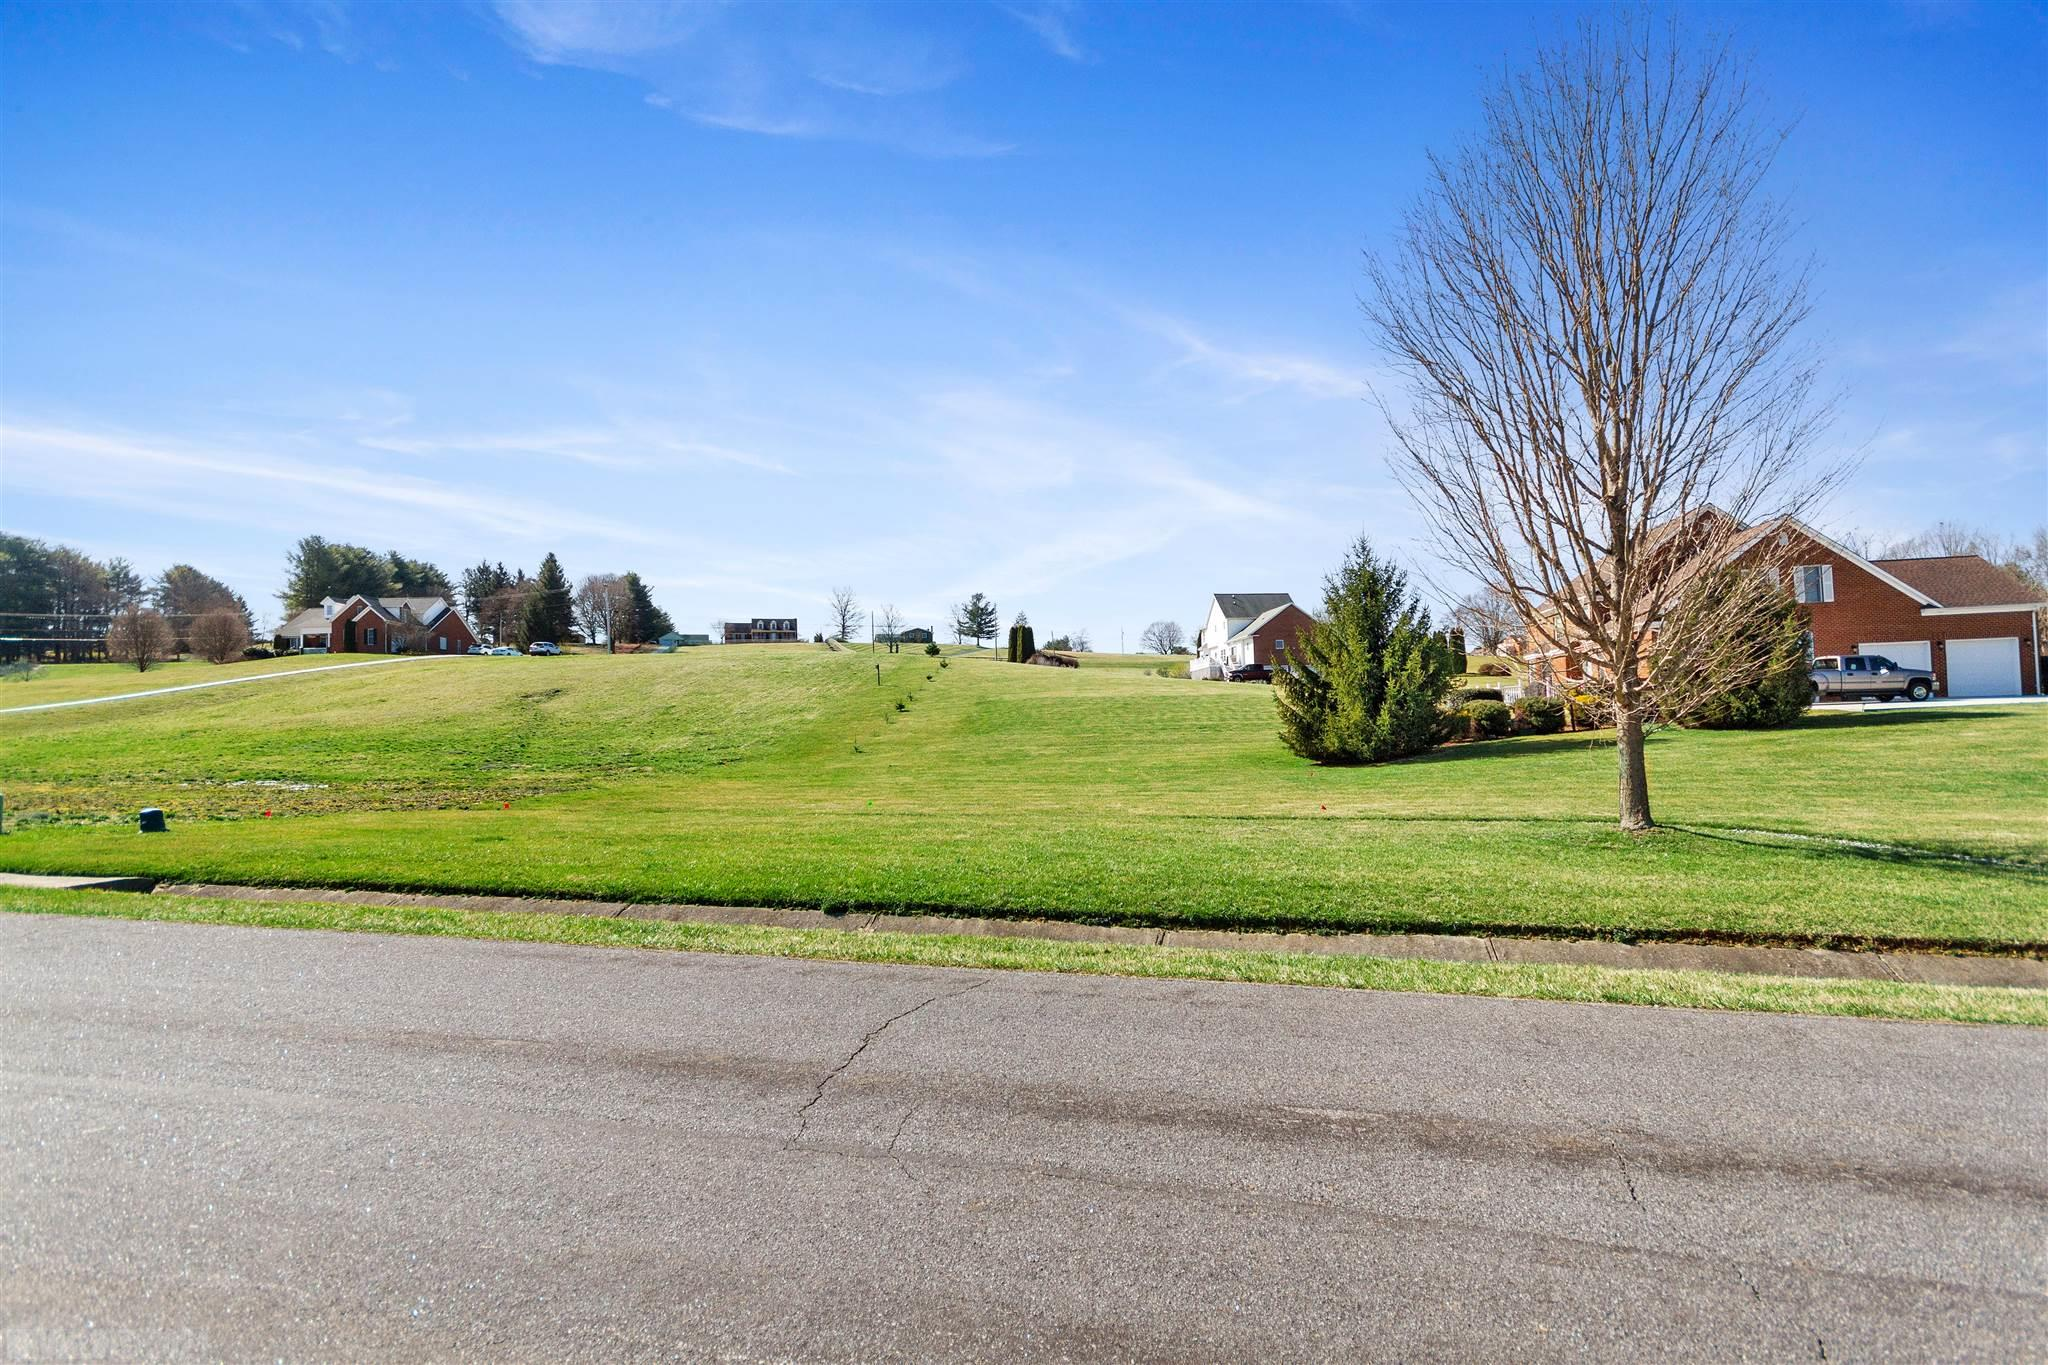 One the last lots left available in desirable Heritage Place in Christiansburg.  Great building site for your own custom-built home on 1.669 acres of land. This flat lot has great views and is ready for your dream home. Property at a price like this won't last long! Contact me today to get started.